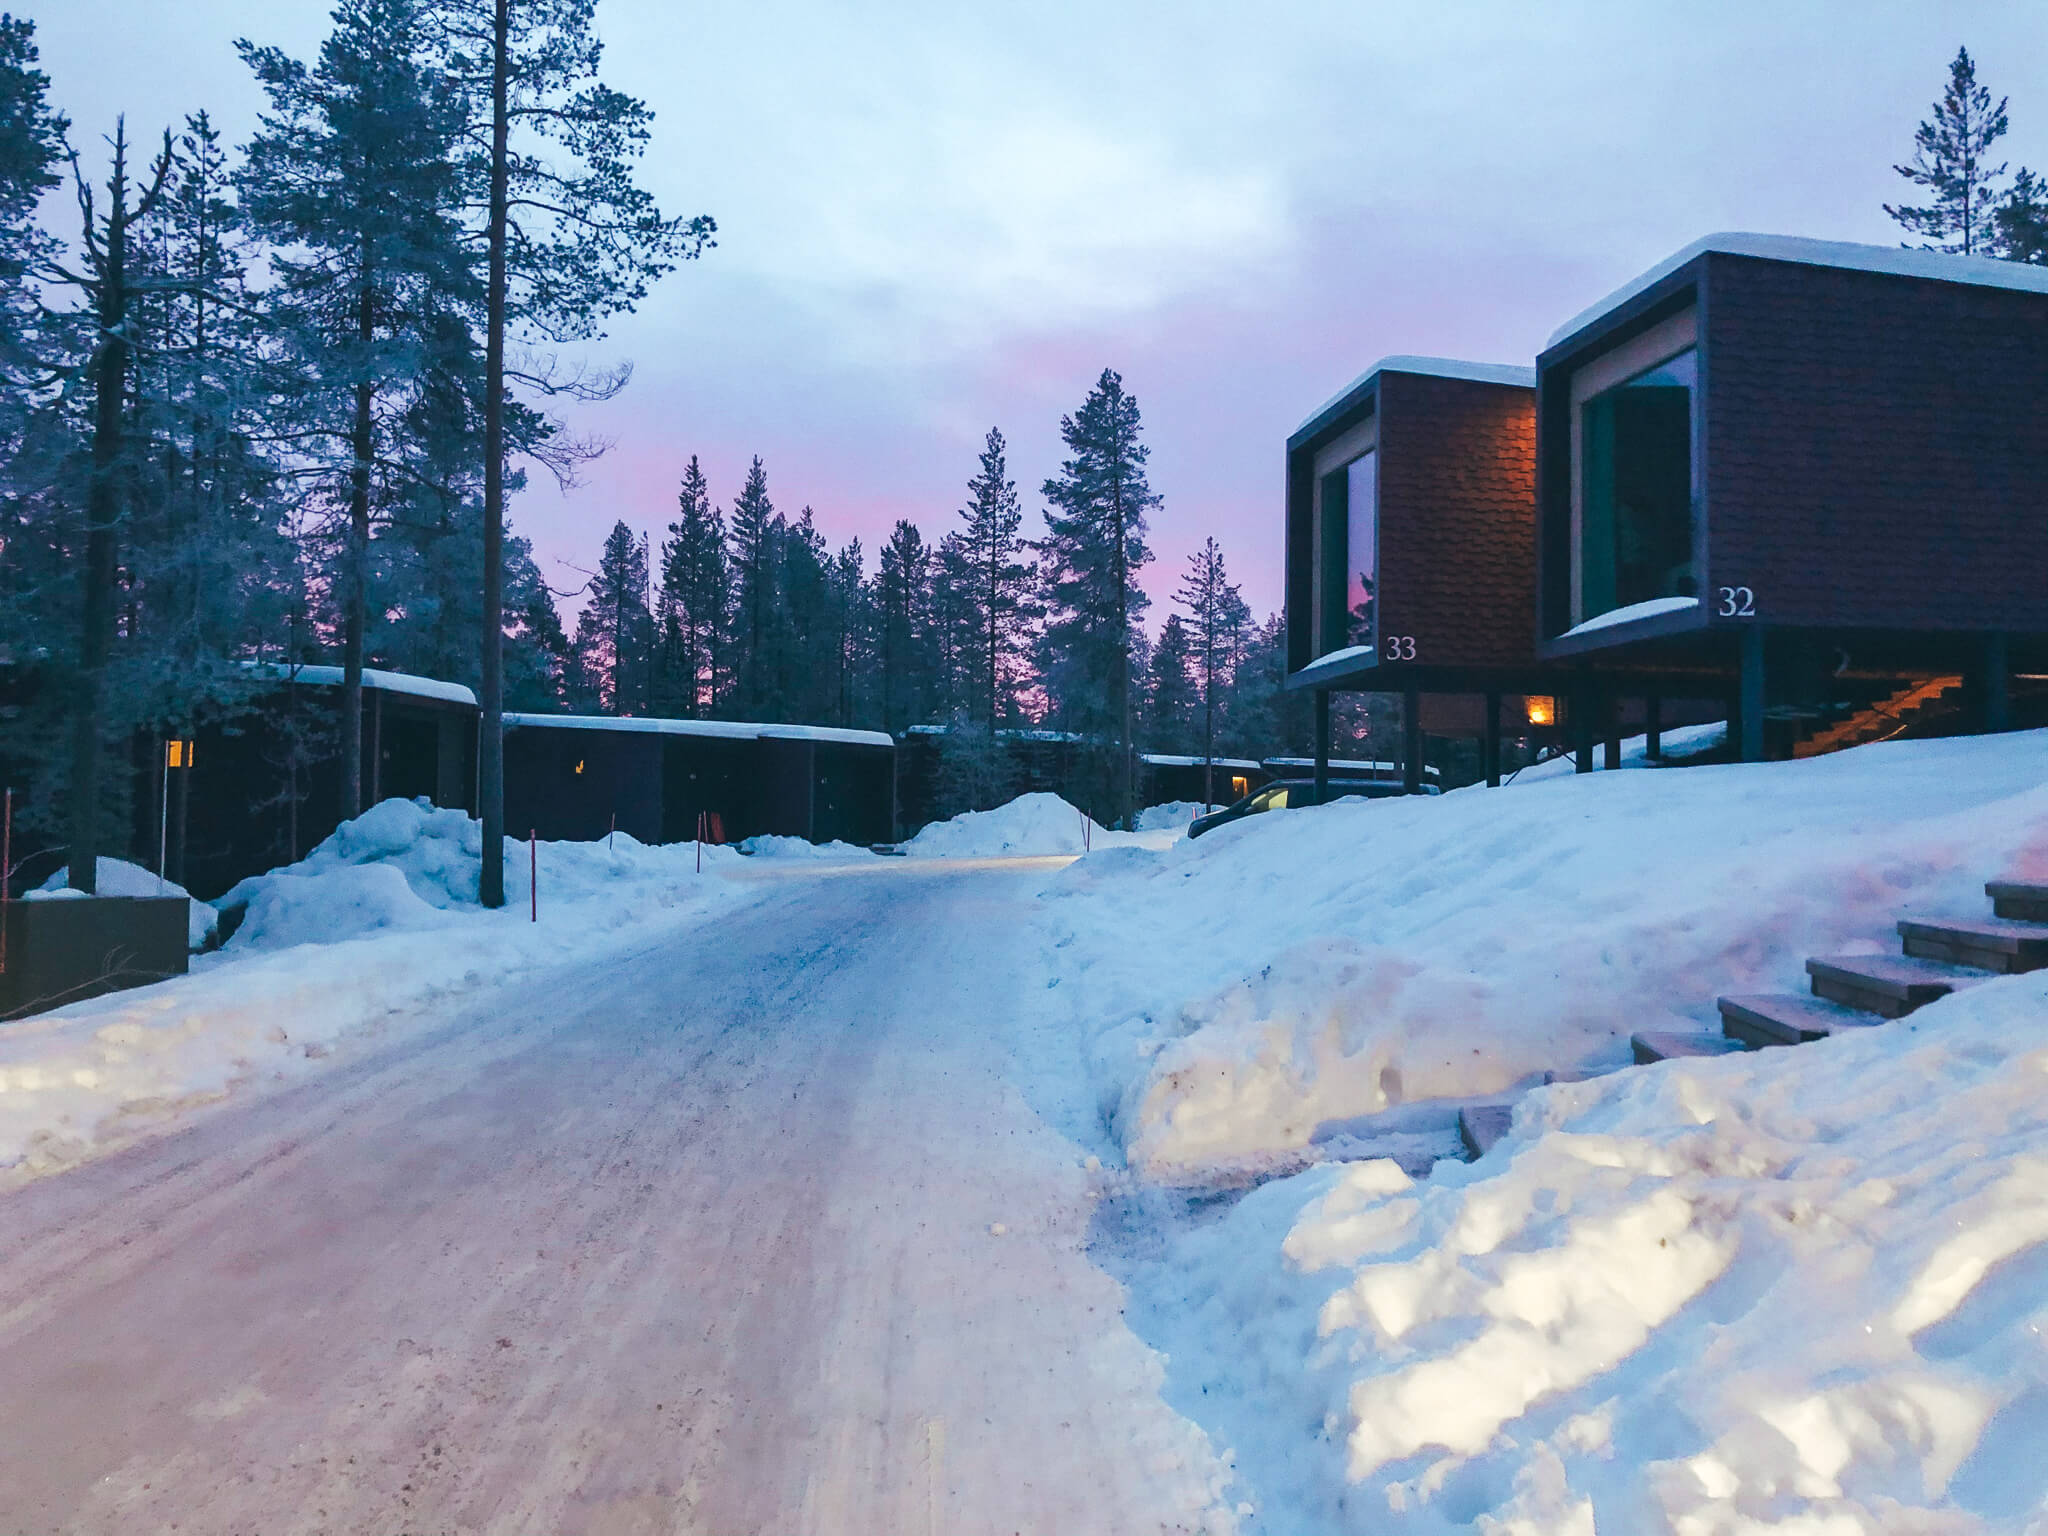 Arctic Treehouse Hotel Rovaniemi, Finland: The most beautiful hotel in the world